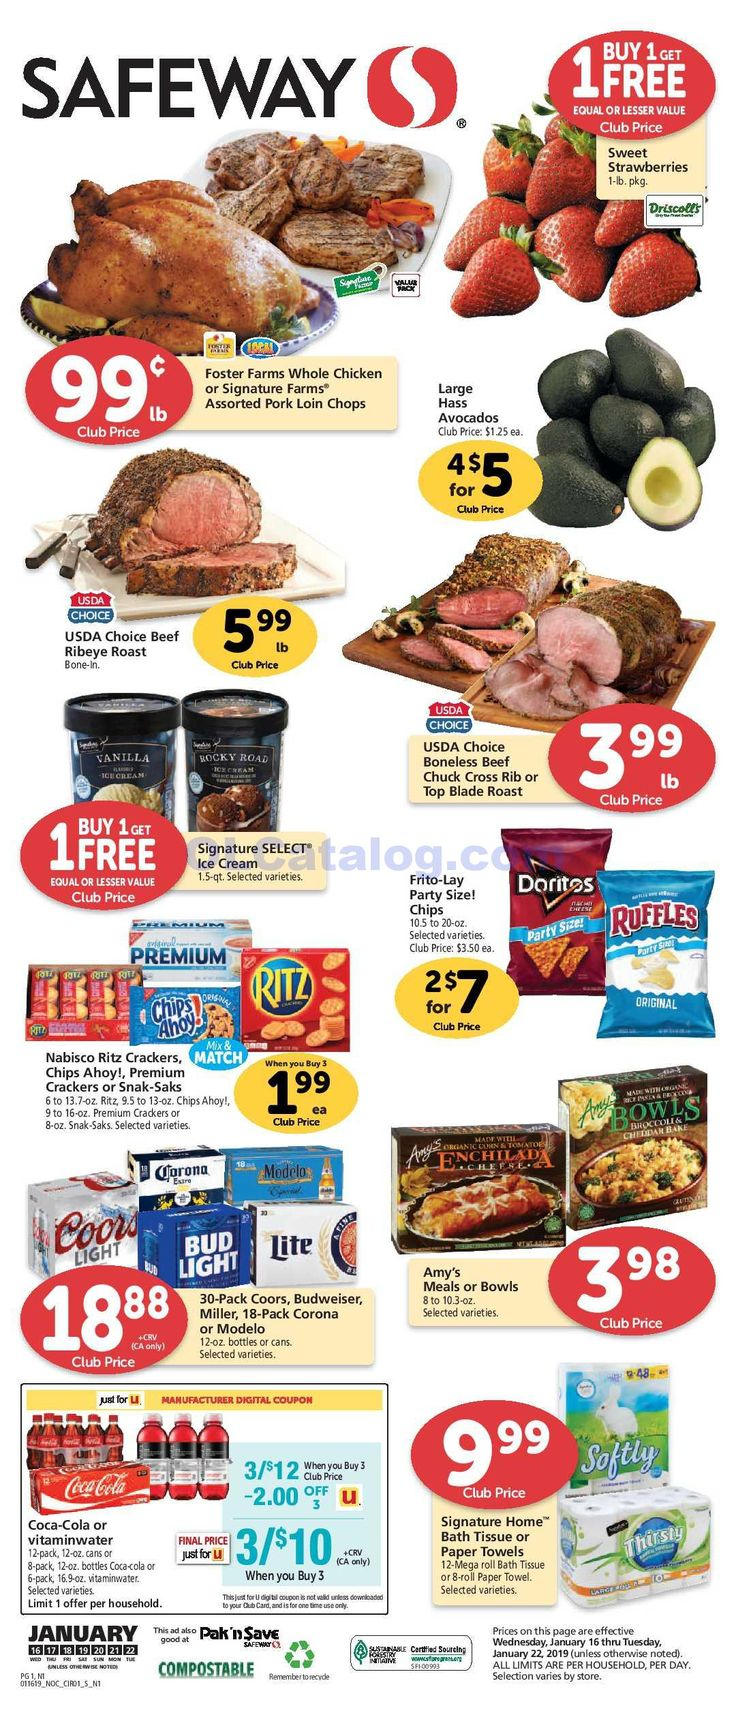 Safeway Weekly ad January 16 22, 2019. Find Latest